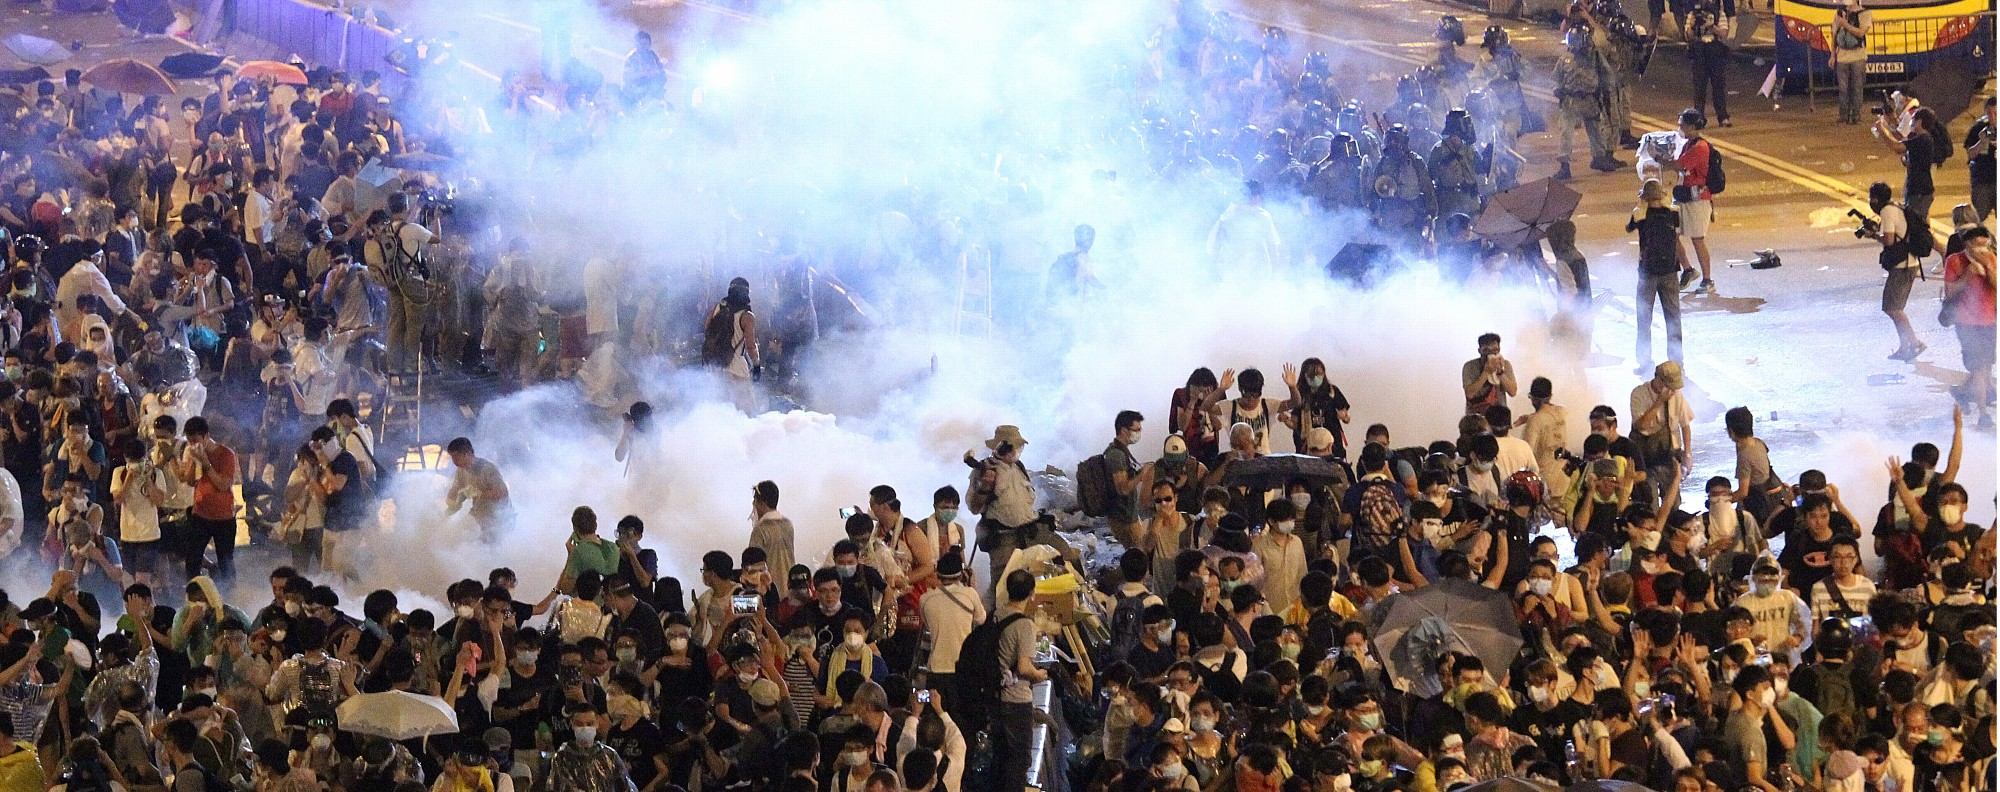 Holy smoke? Tear gas is used on Occupy protestors.